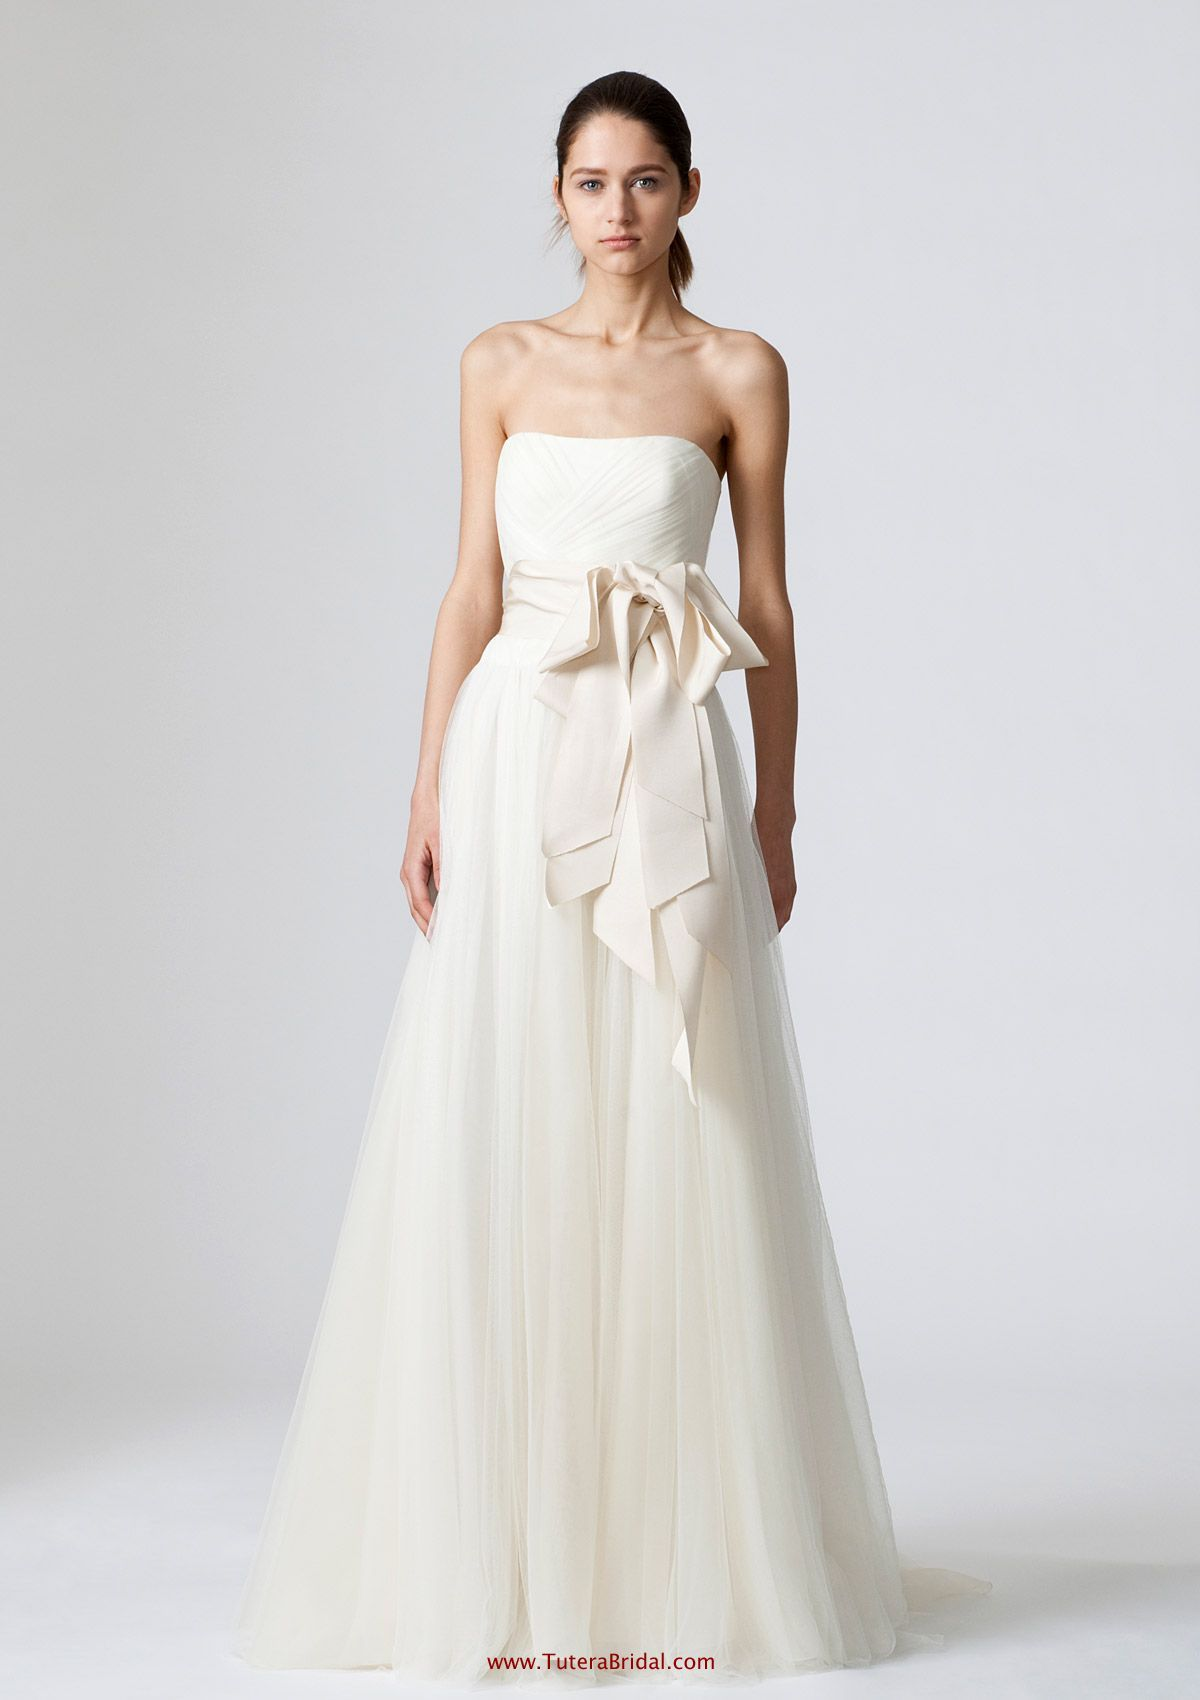 Vera wang wedding dress rental  The perfect dress except the sash needs to be lavender  My dream